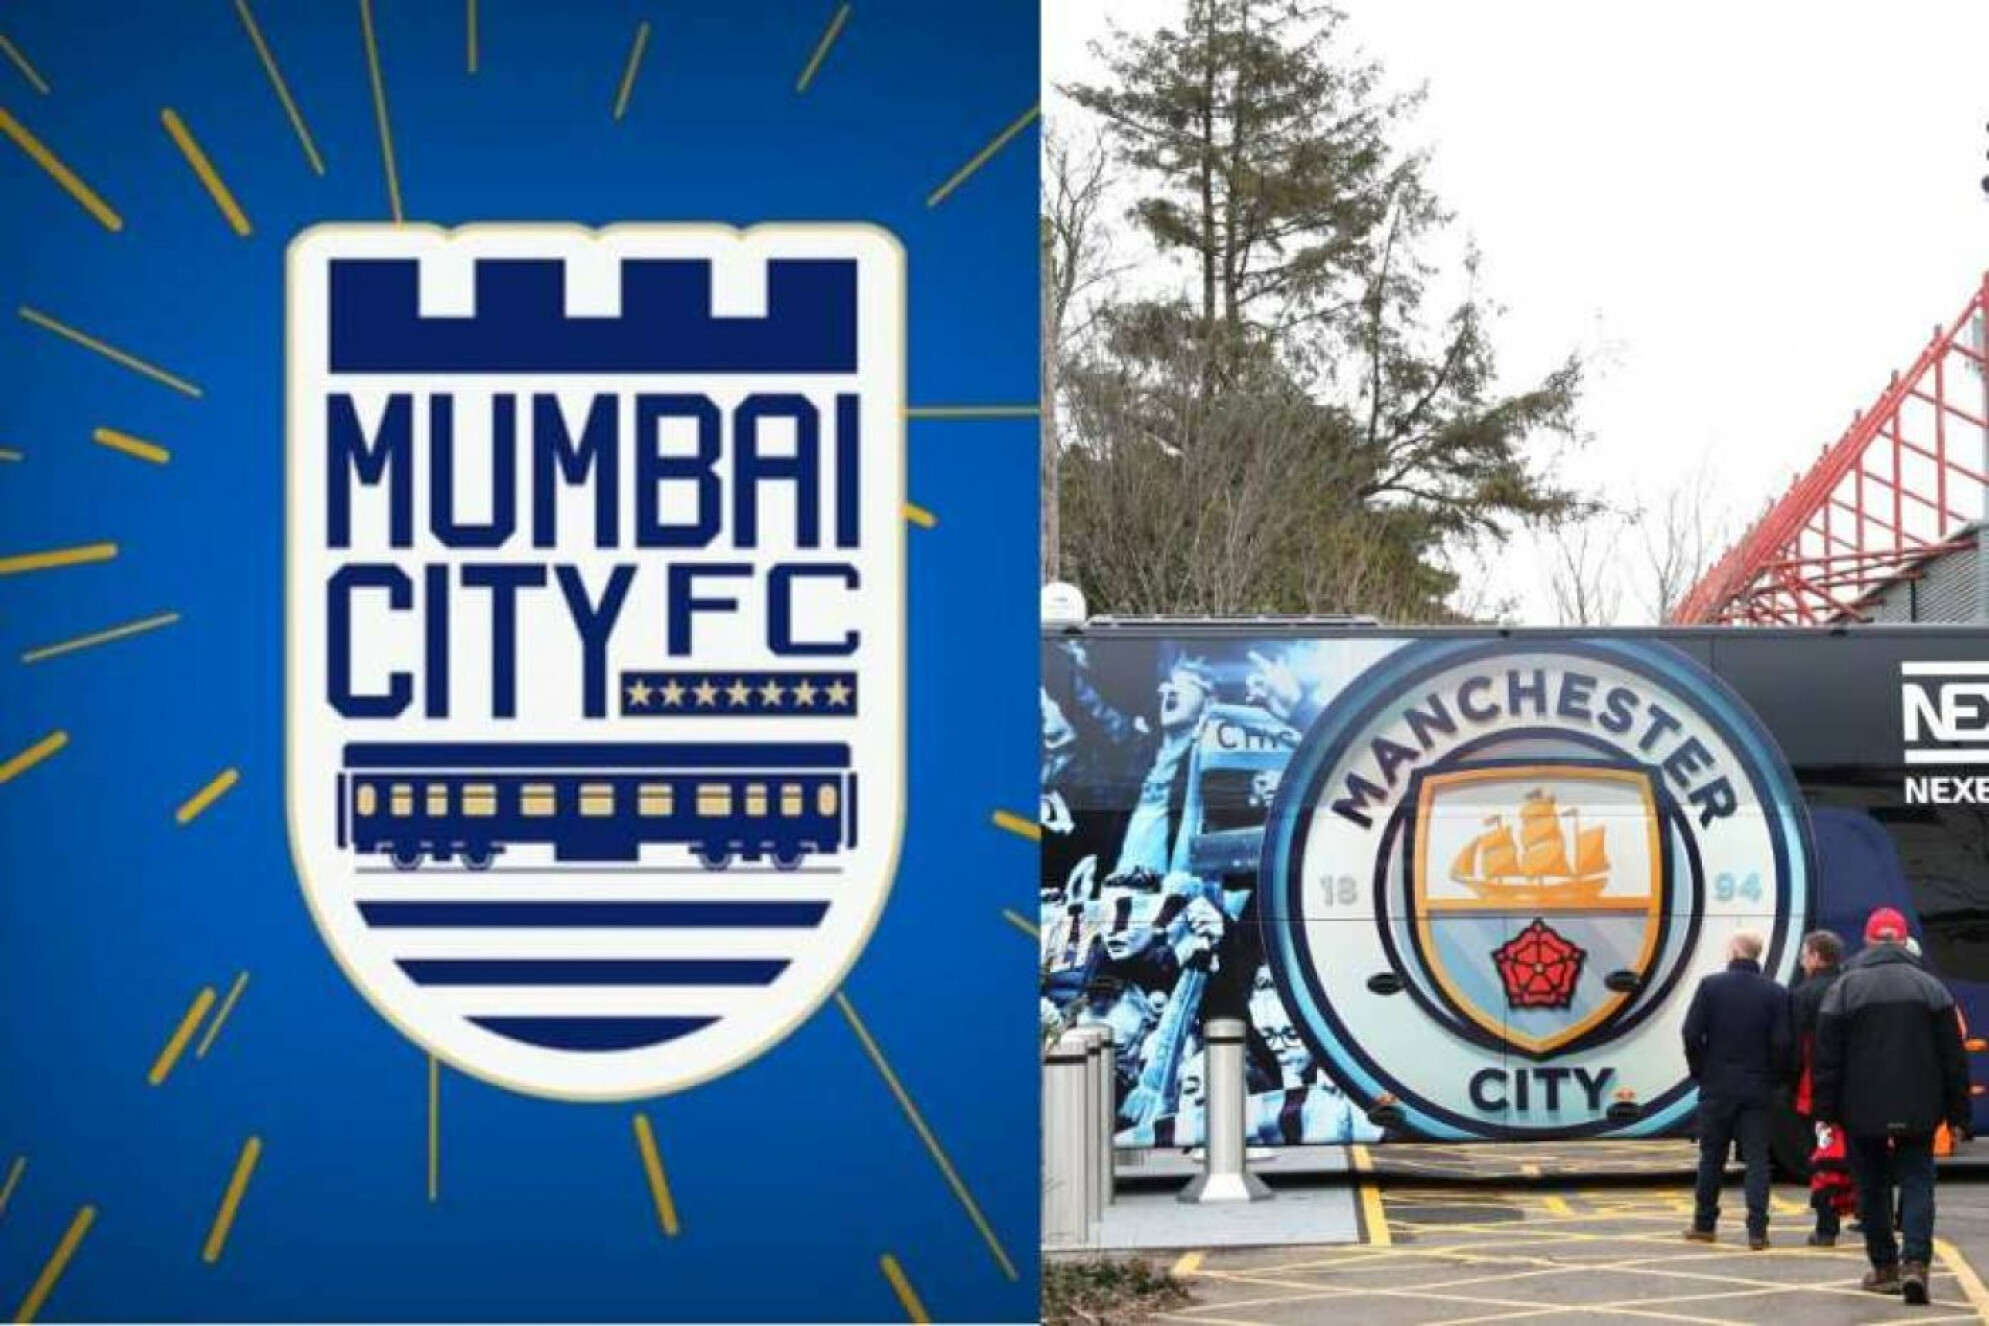 City Football Group set to be announced as owners of Mumbai City FC soon: Reports